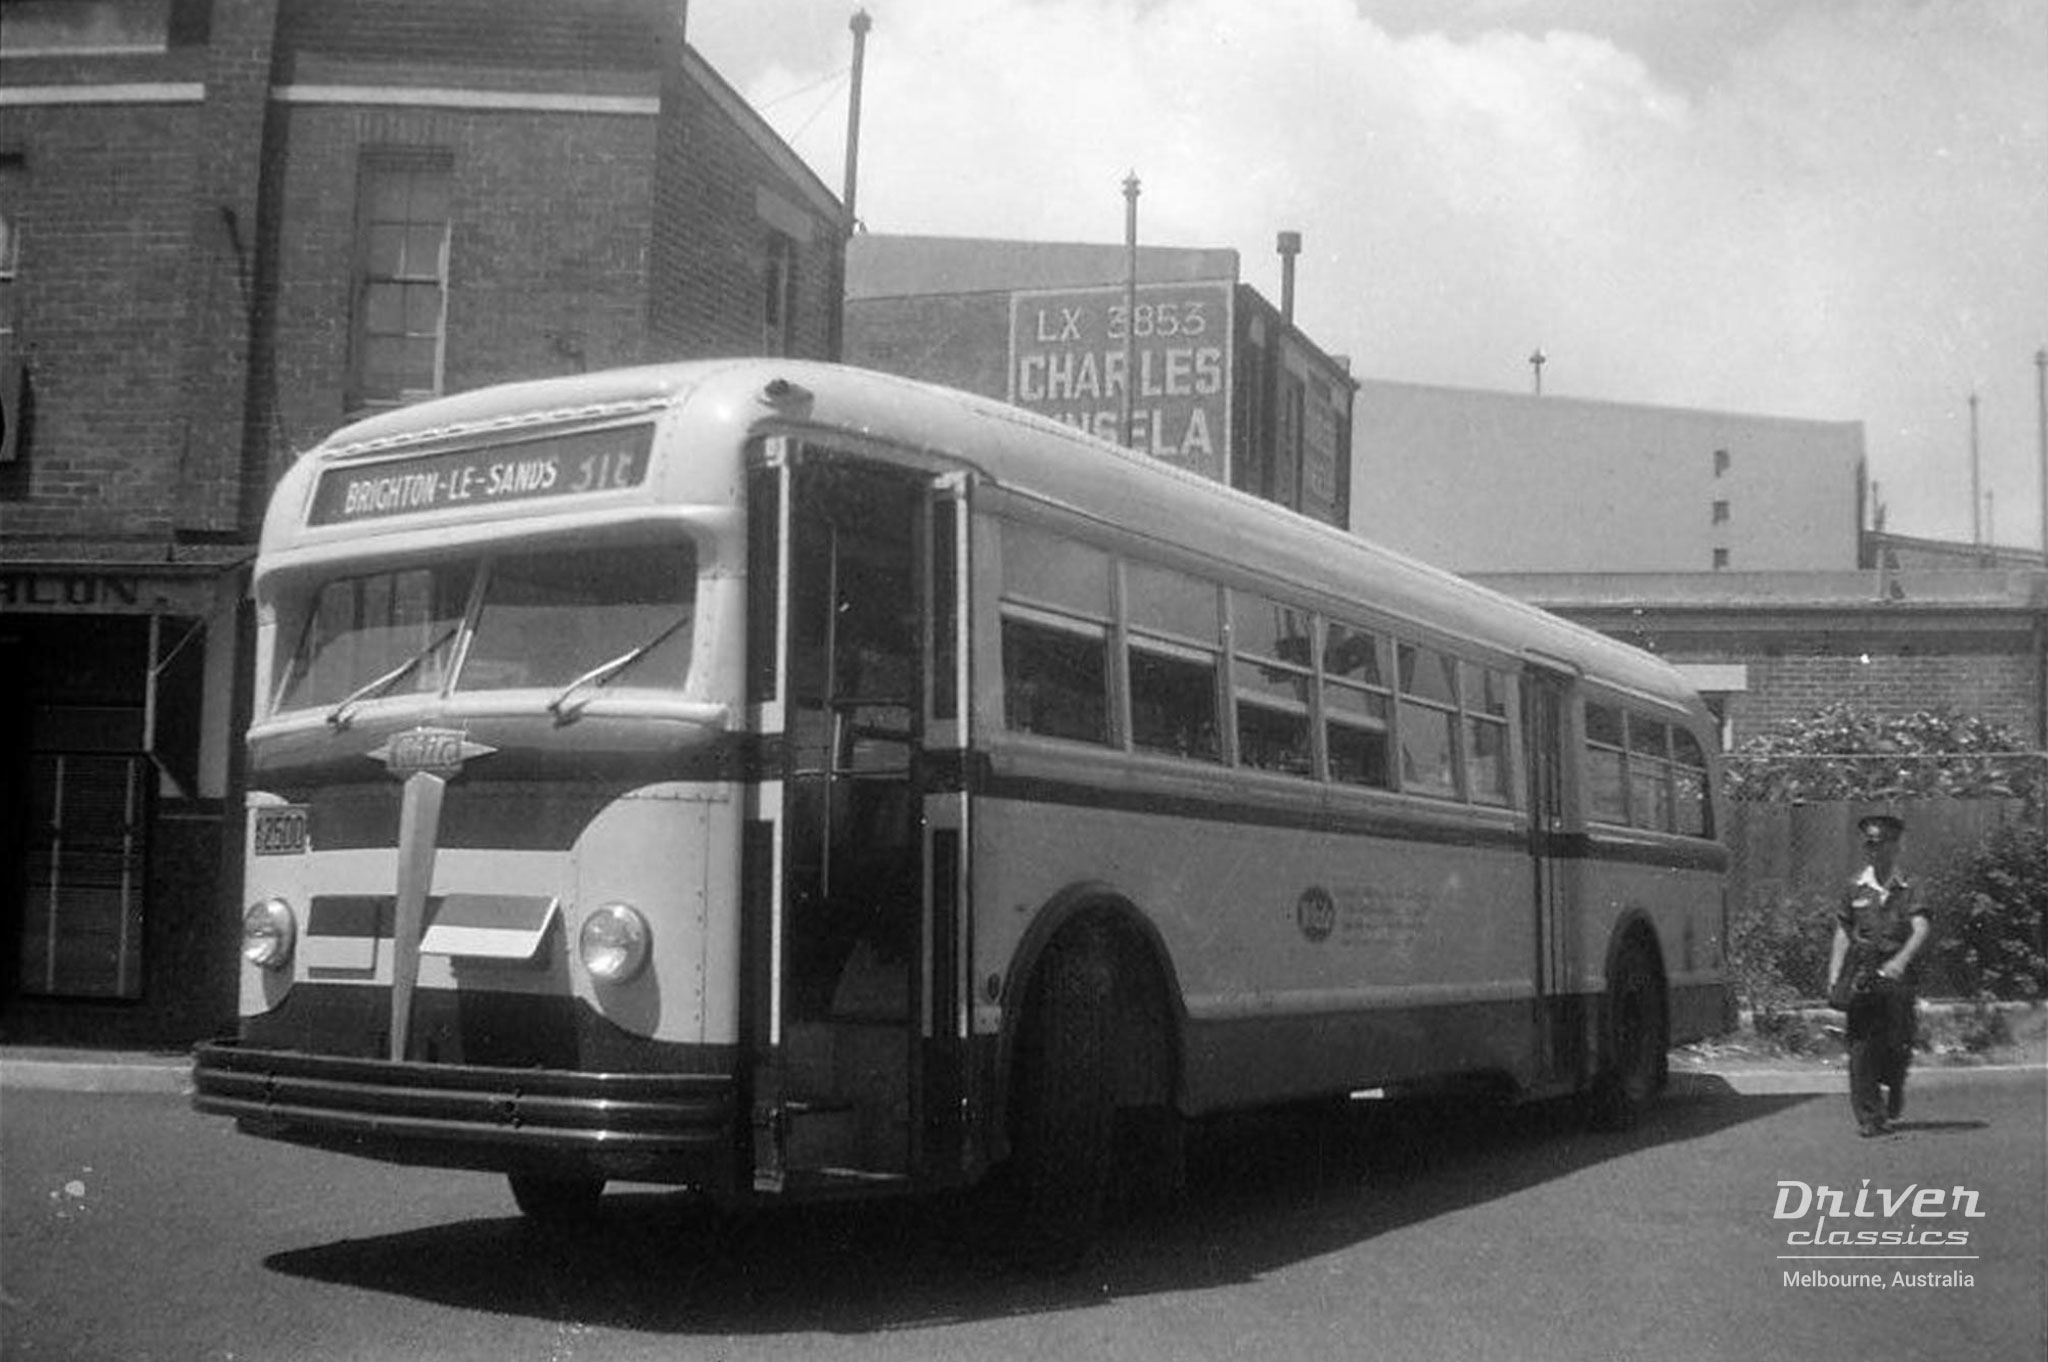 White 798-12 bus with mid 1950's paint scheme